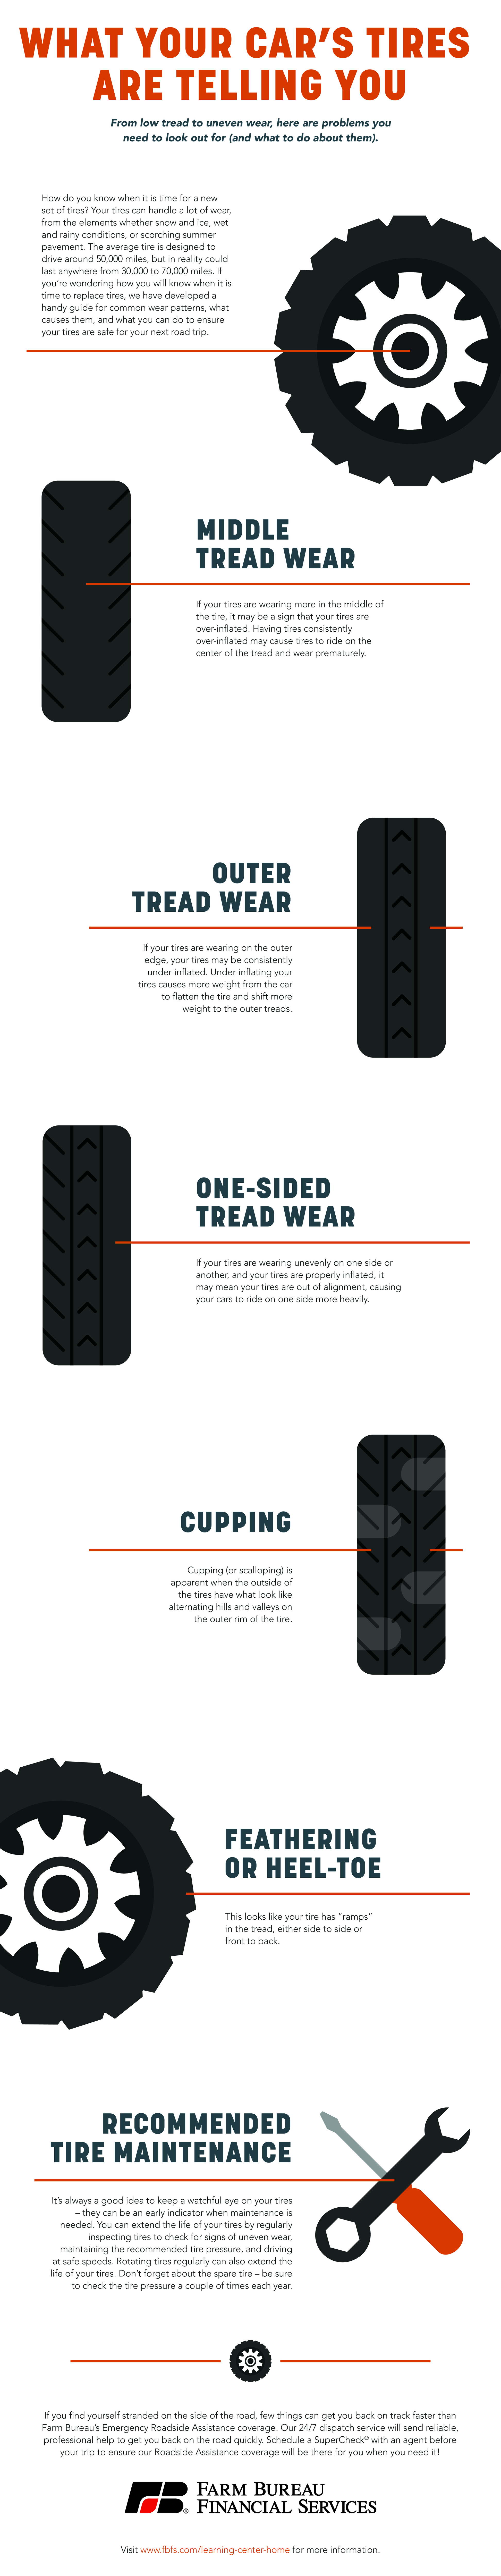 What you car's tires are telling you